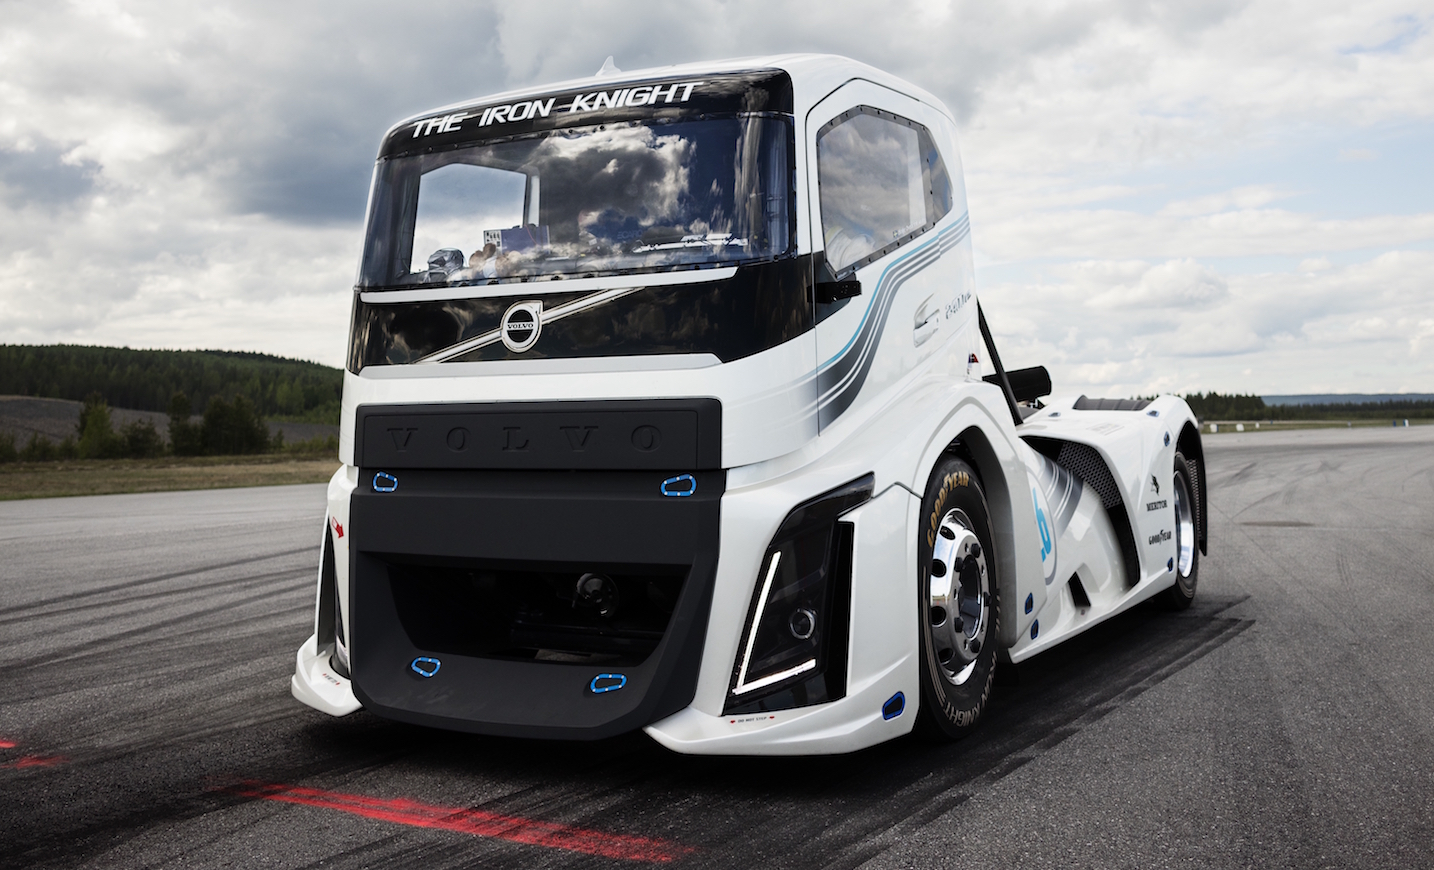 Volvo-The-Iron-Knight-Breaks-Record-Fastest-Truck-UK-Haulier-autonovosti.me-4